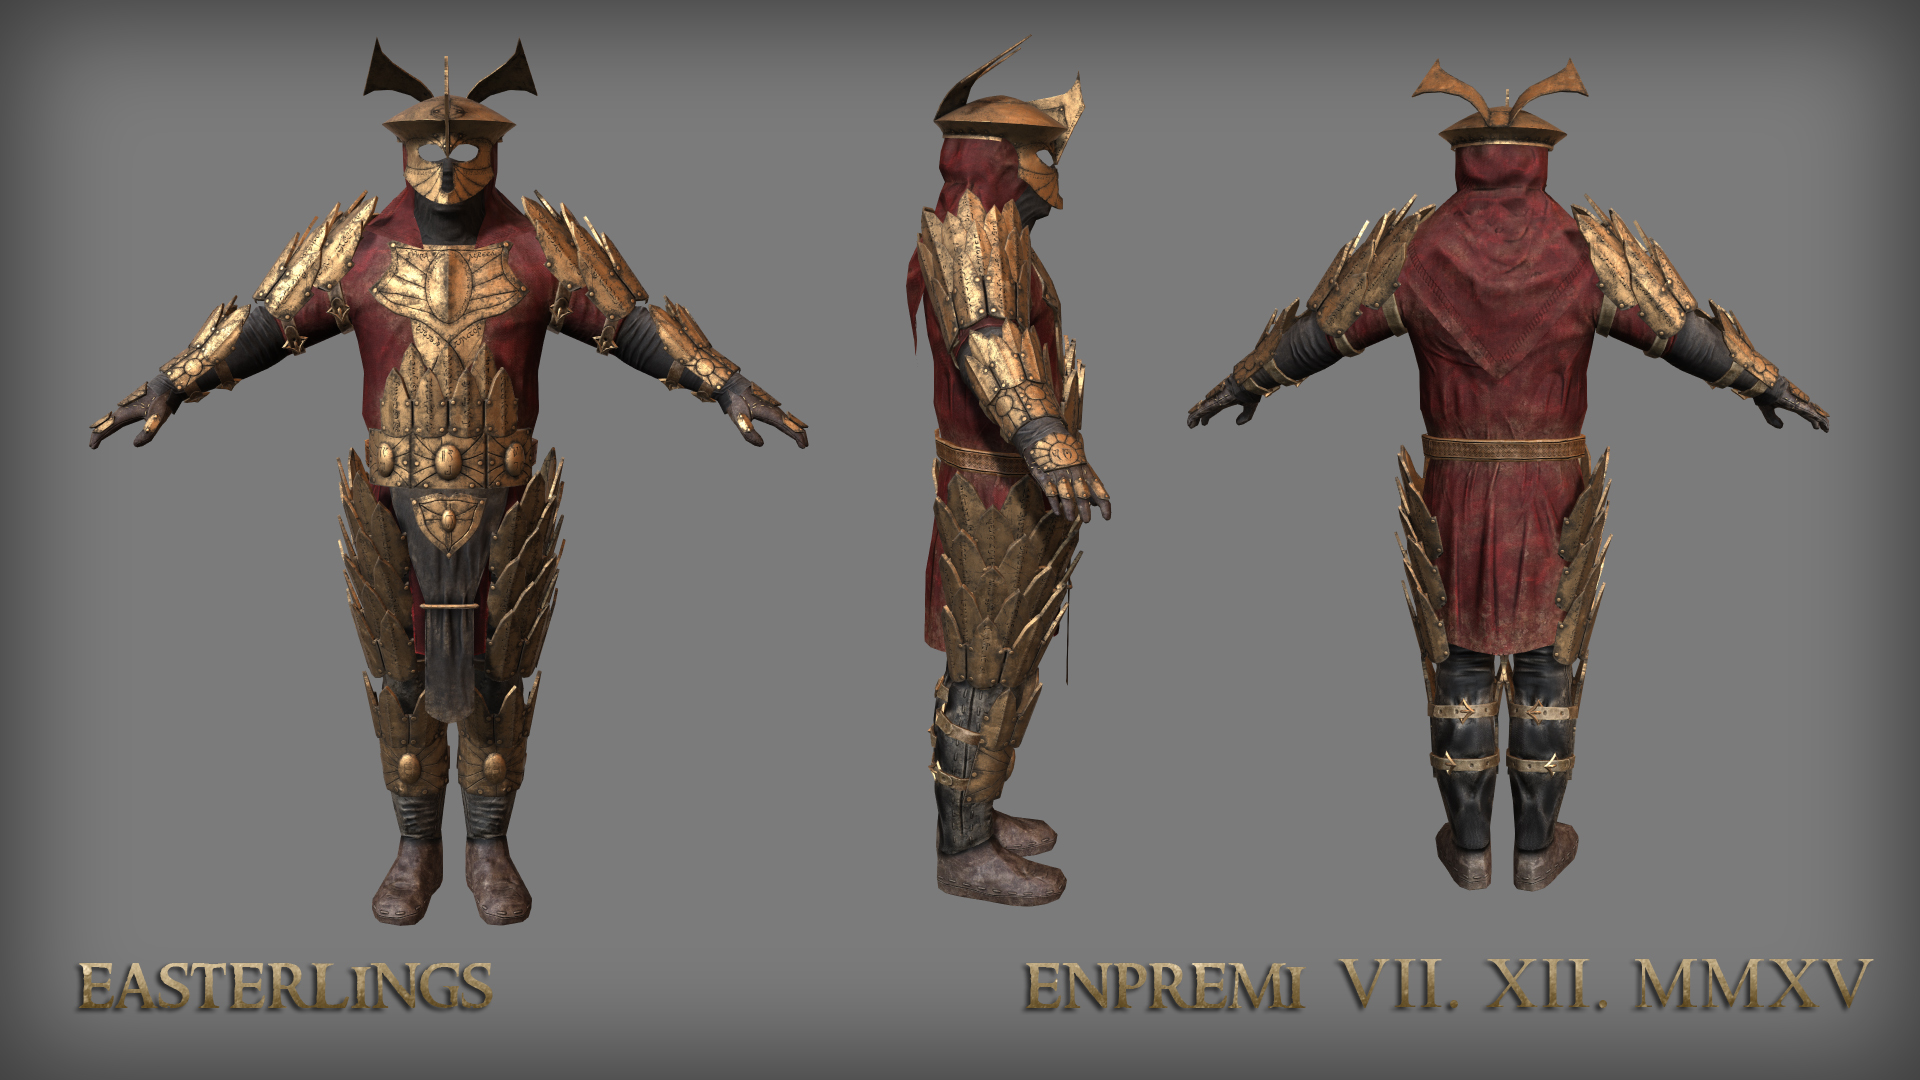 Easterlings Armour image   Total War Rise of Mordor mod for 1920x1080